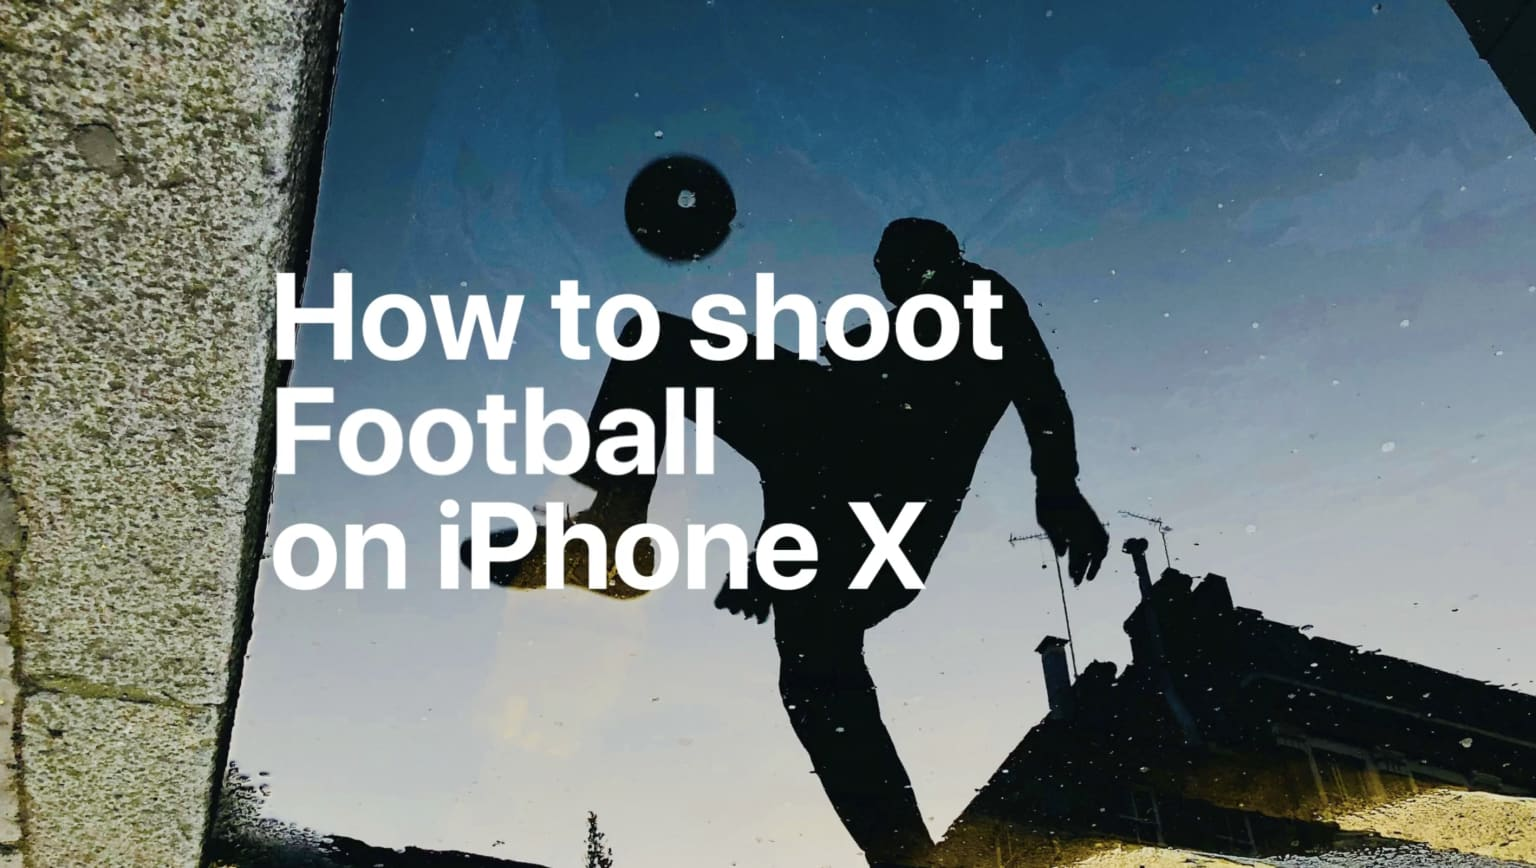 iPhone X – How To Shoot